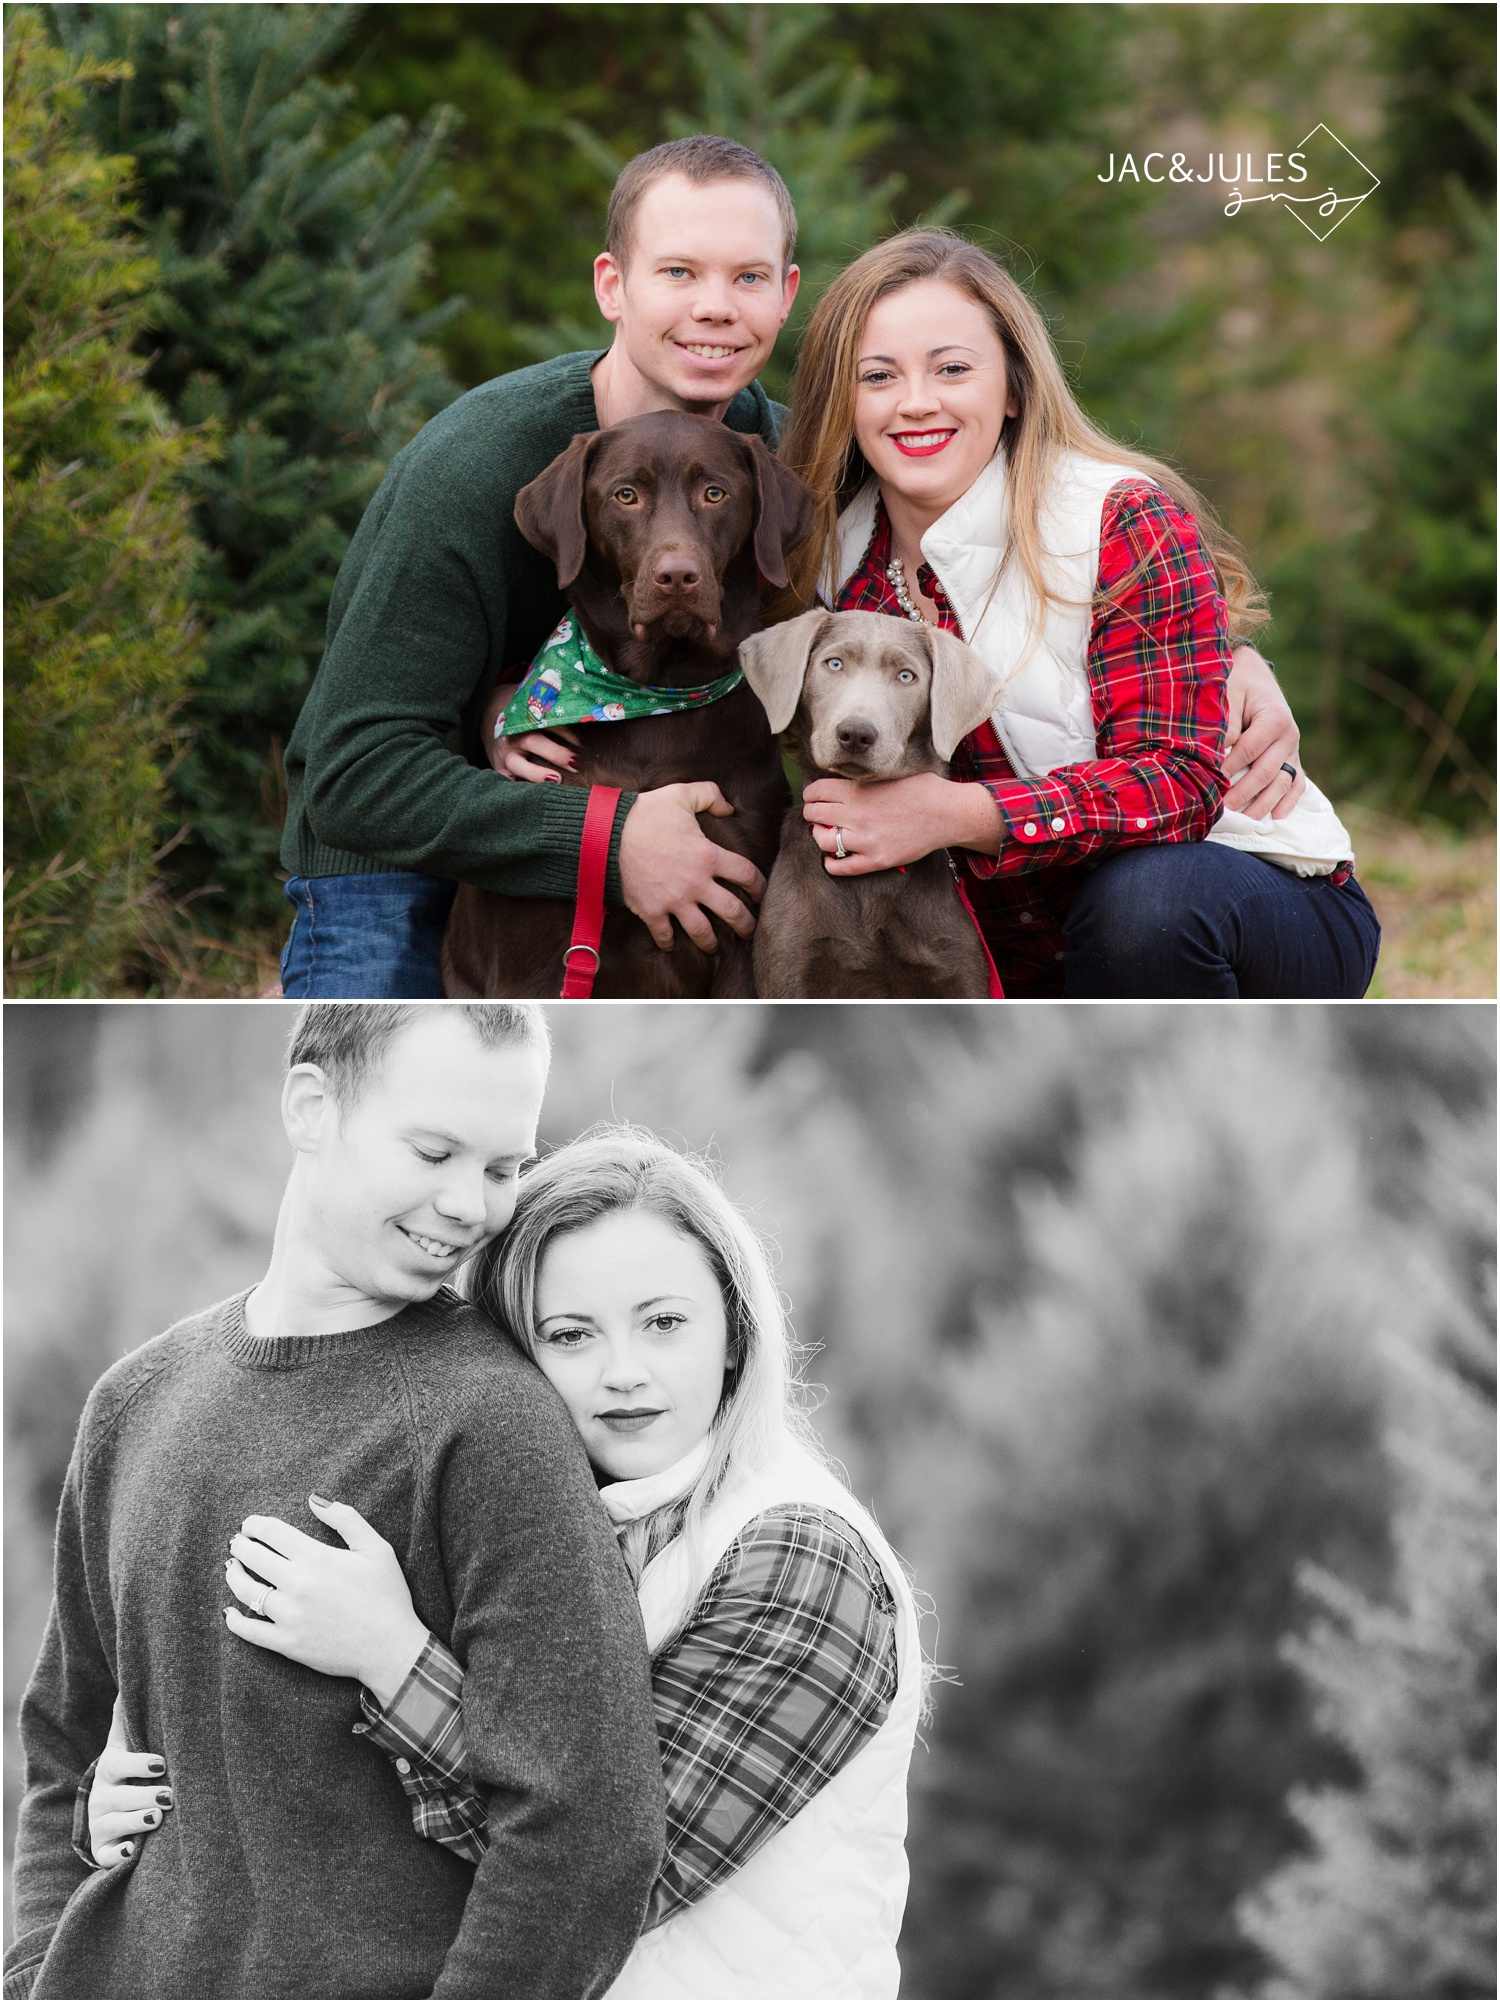 jacnjules photographs couple and their dogs for their christmas photos at Lone Silo Tree Farm in New Egypt NJ using natural light